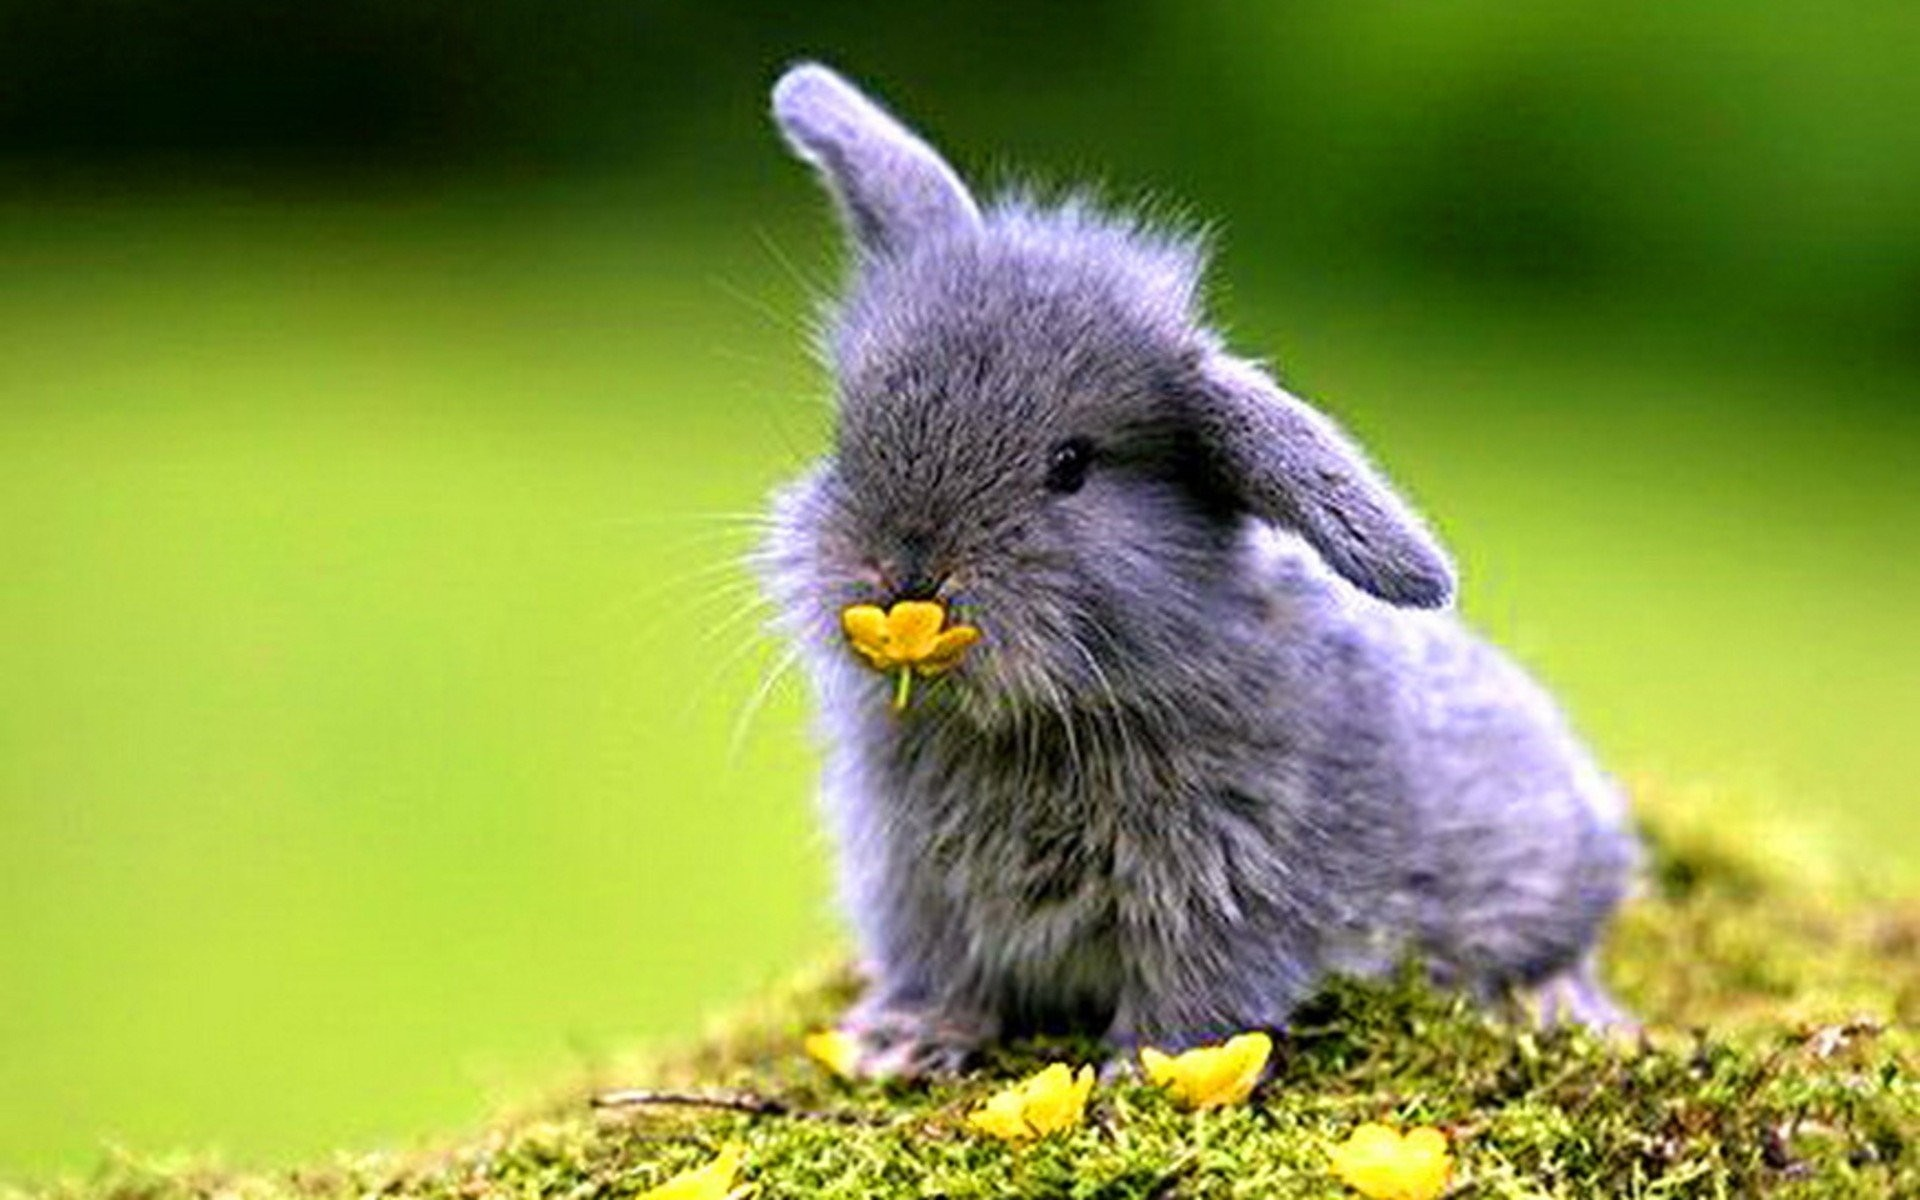 Cute White Baby Rabbits Wallpapers Cute Bunny Wallpapers 183 ①